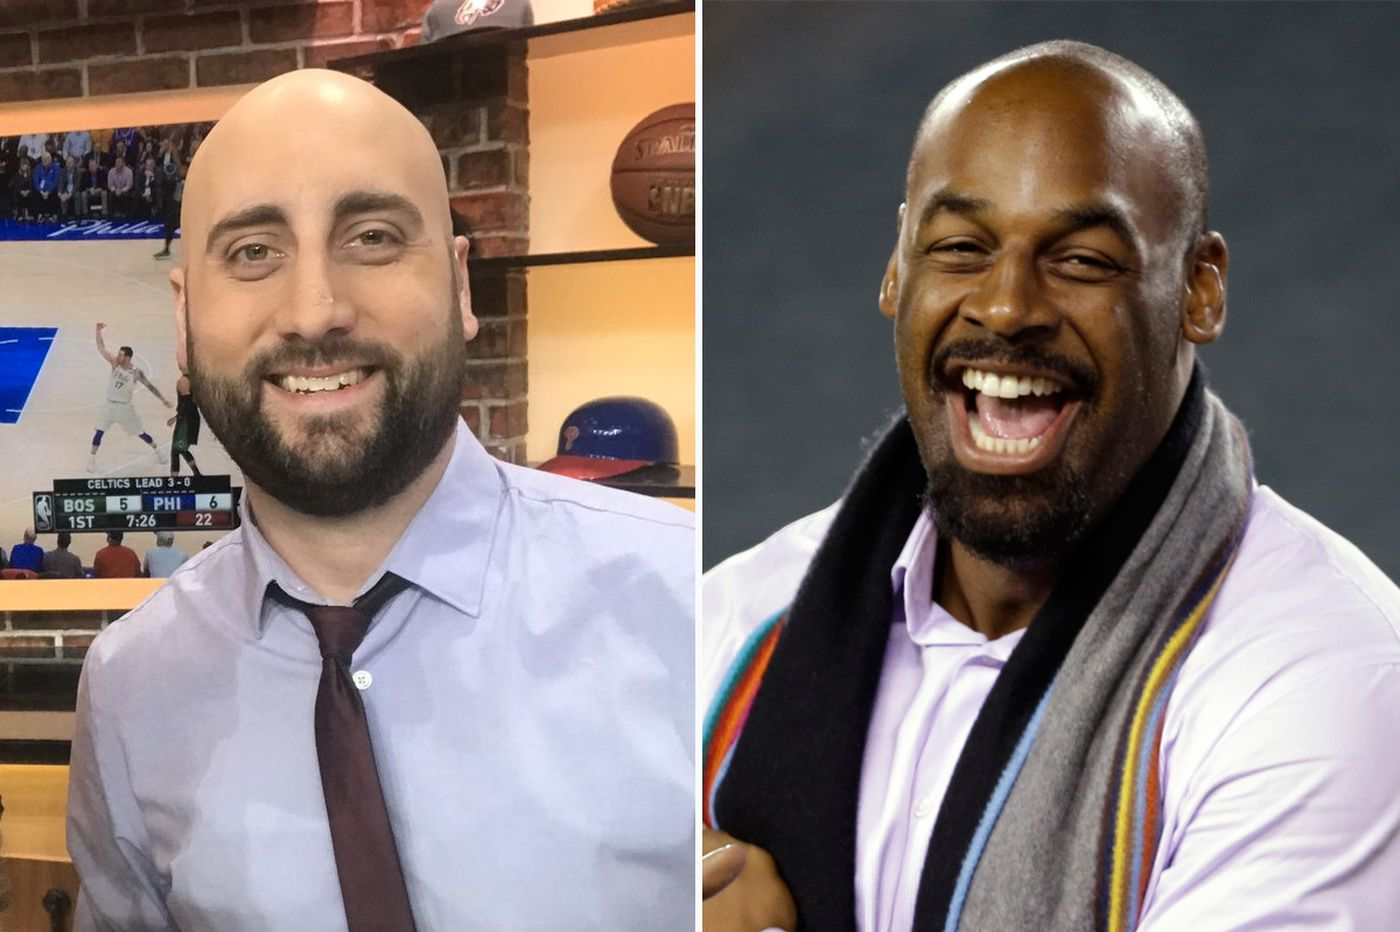 Marc Farzetta defends Donovan McNabb joining 97.5 The Fanatic: 'You're all idiots'